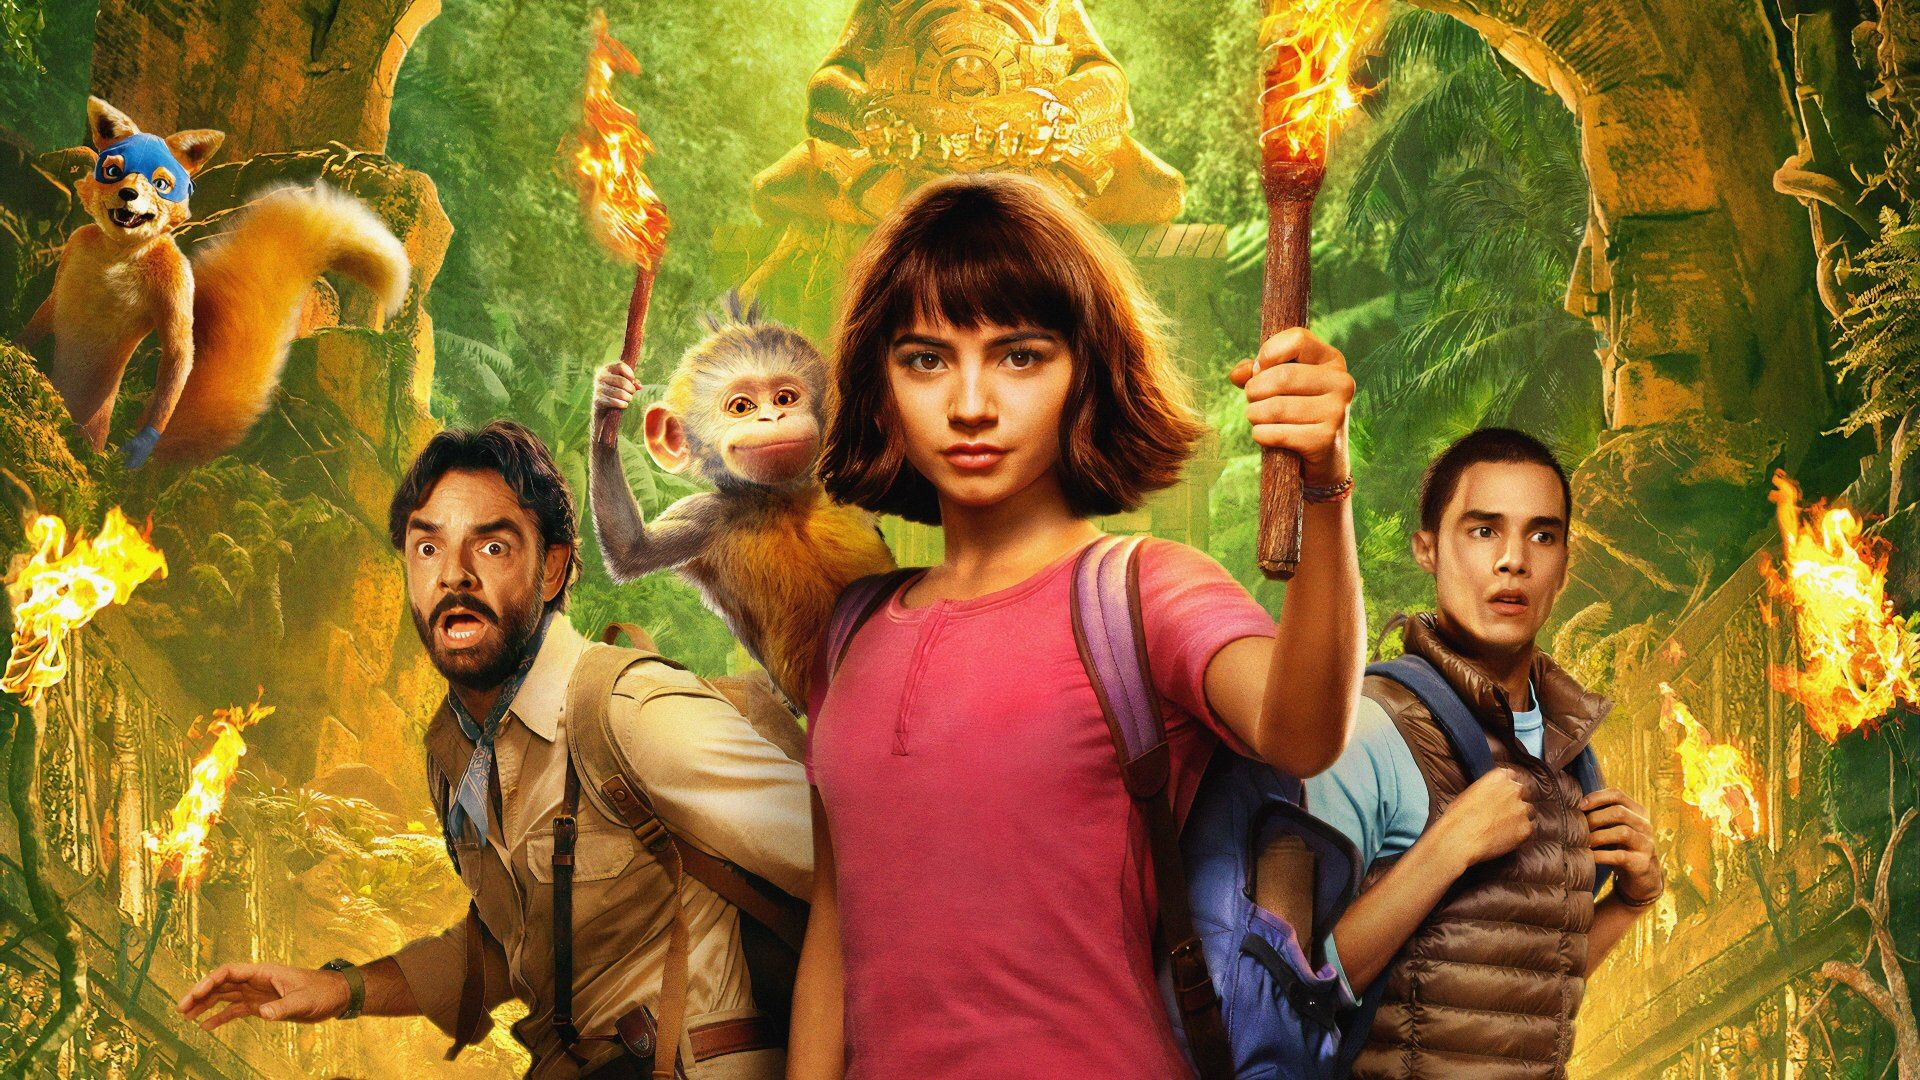 Dora And The Lost City Of Gold 2019 Dual Audio Hindi English 480p Brrip In 2021 Lost City Of Gold Lost City Gold Movie